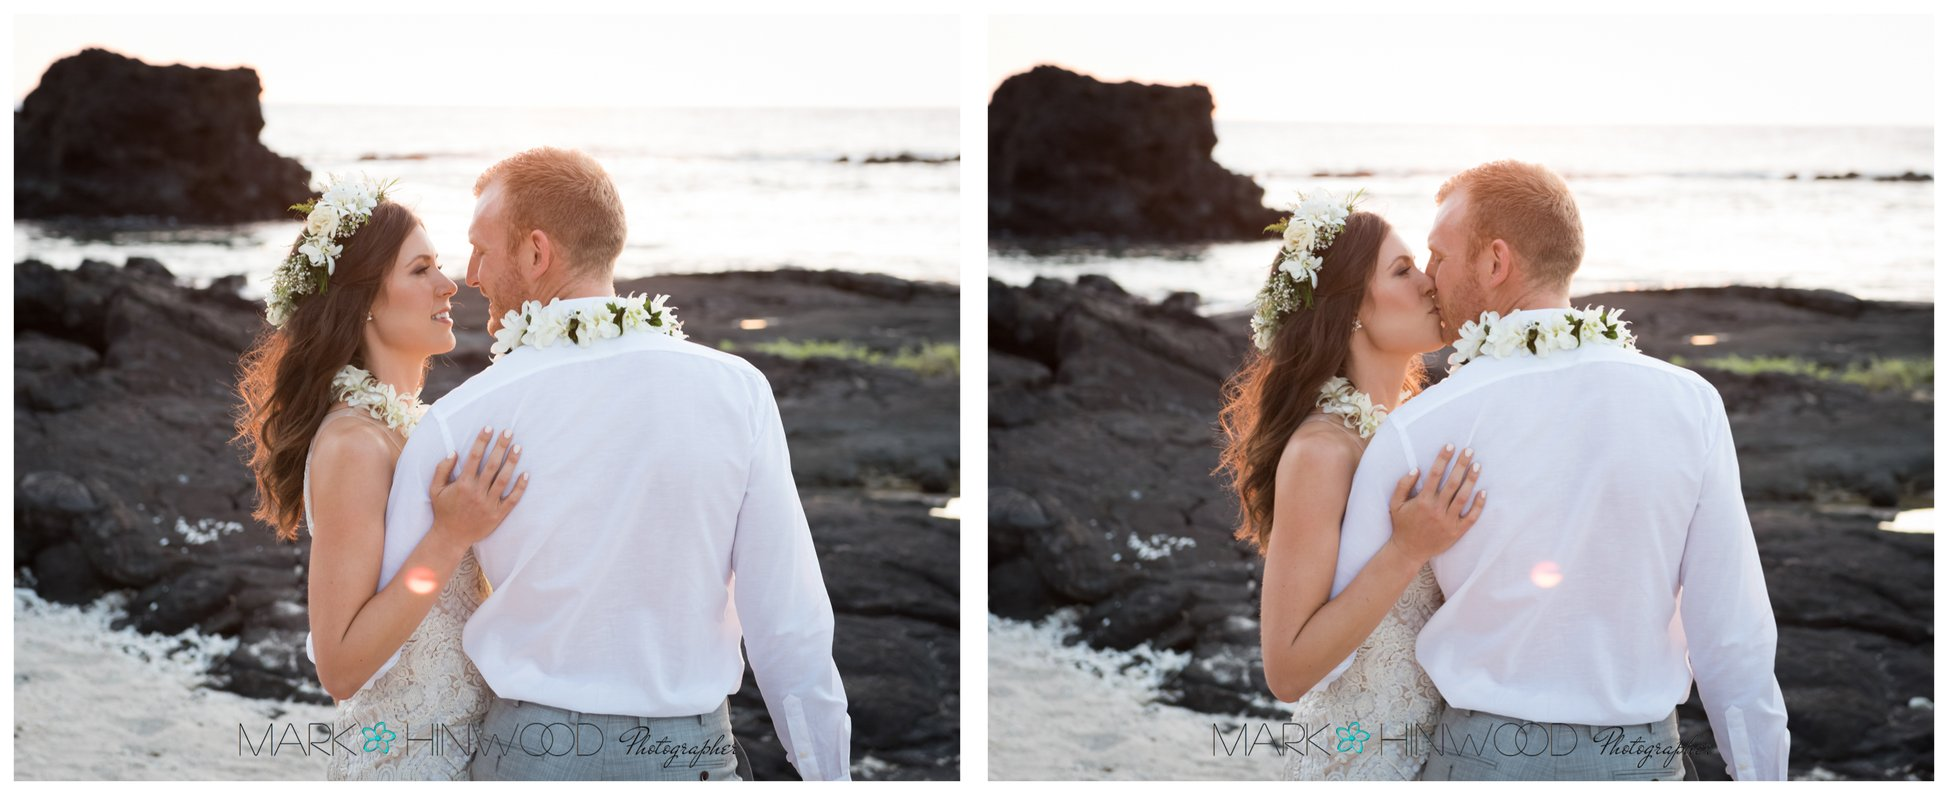 Amazing Hawaii beach weddings 12